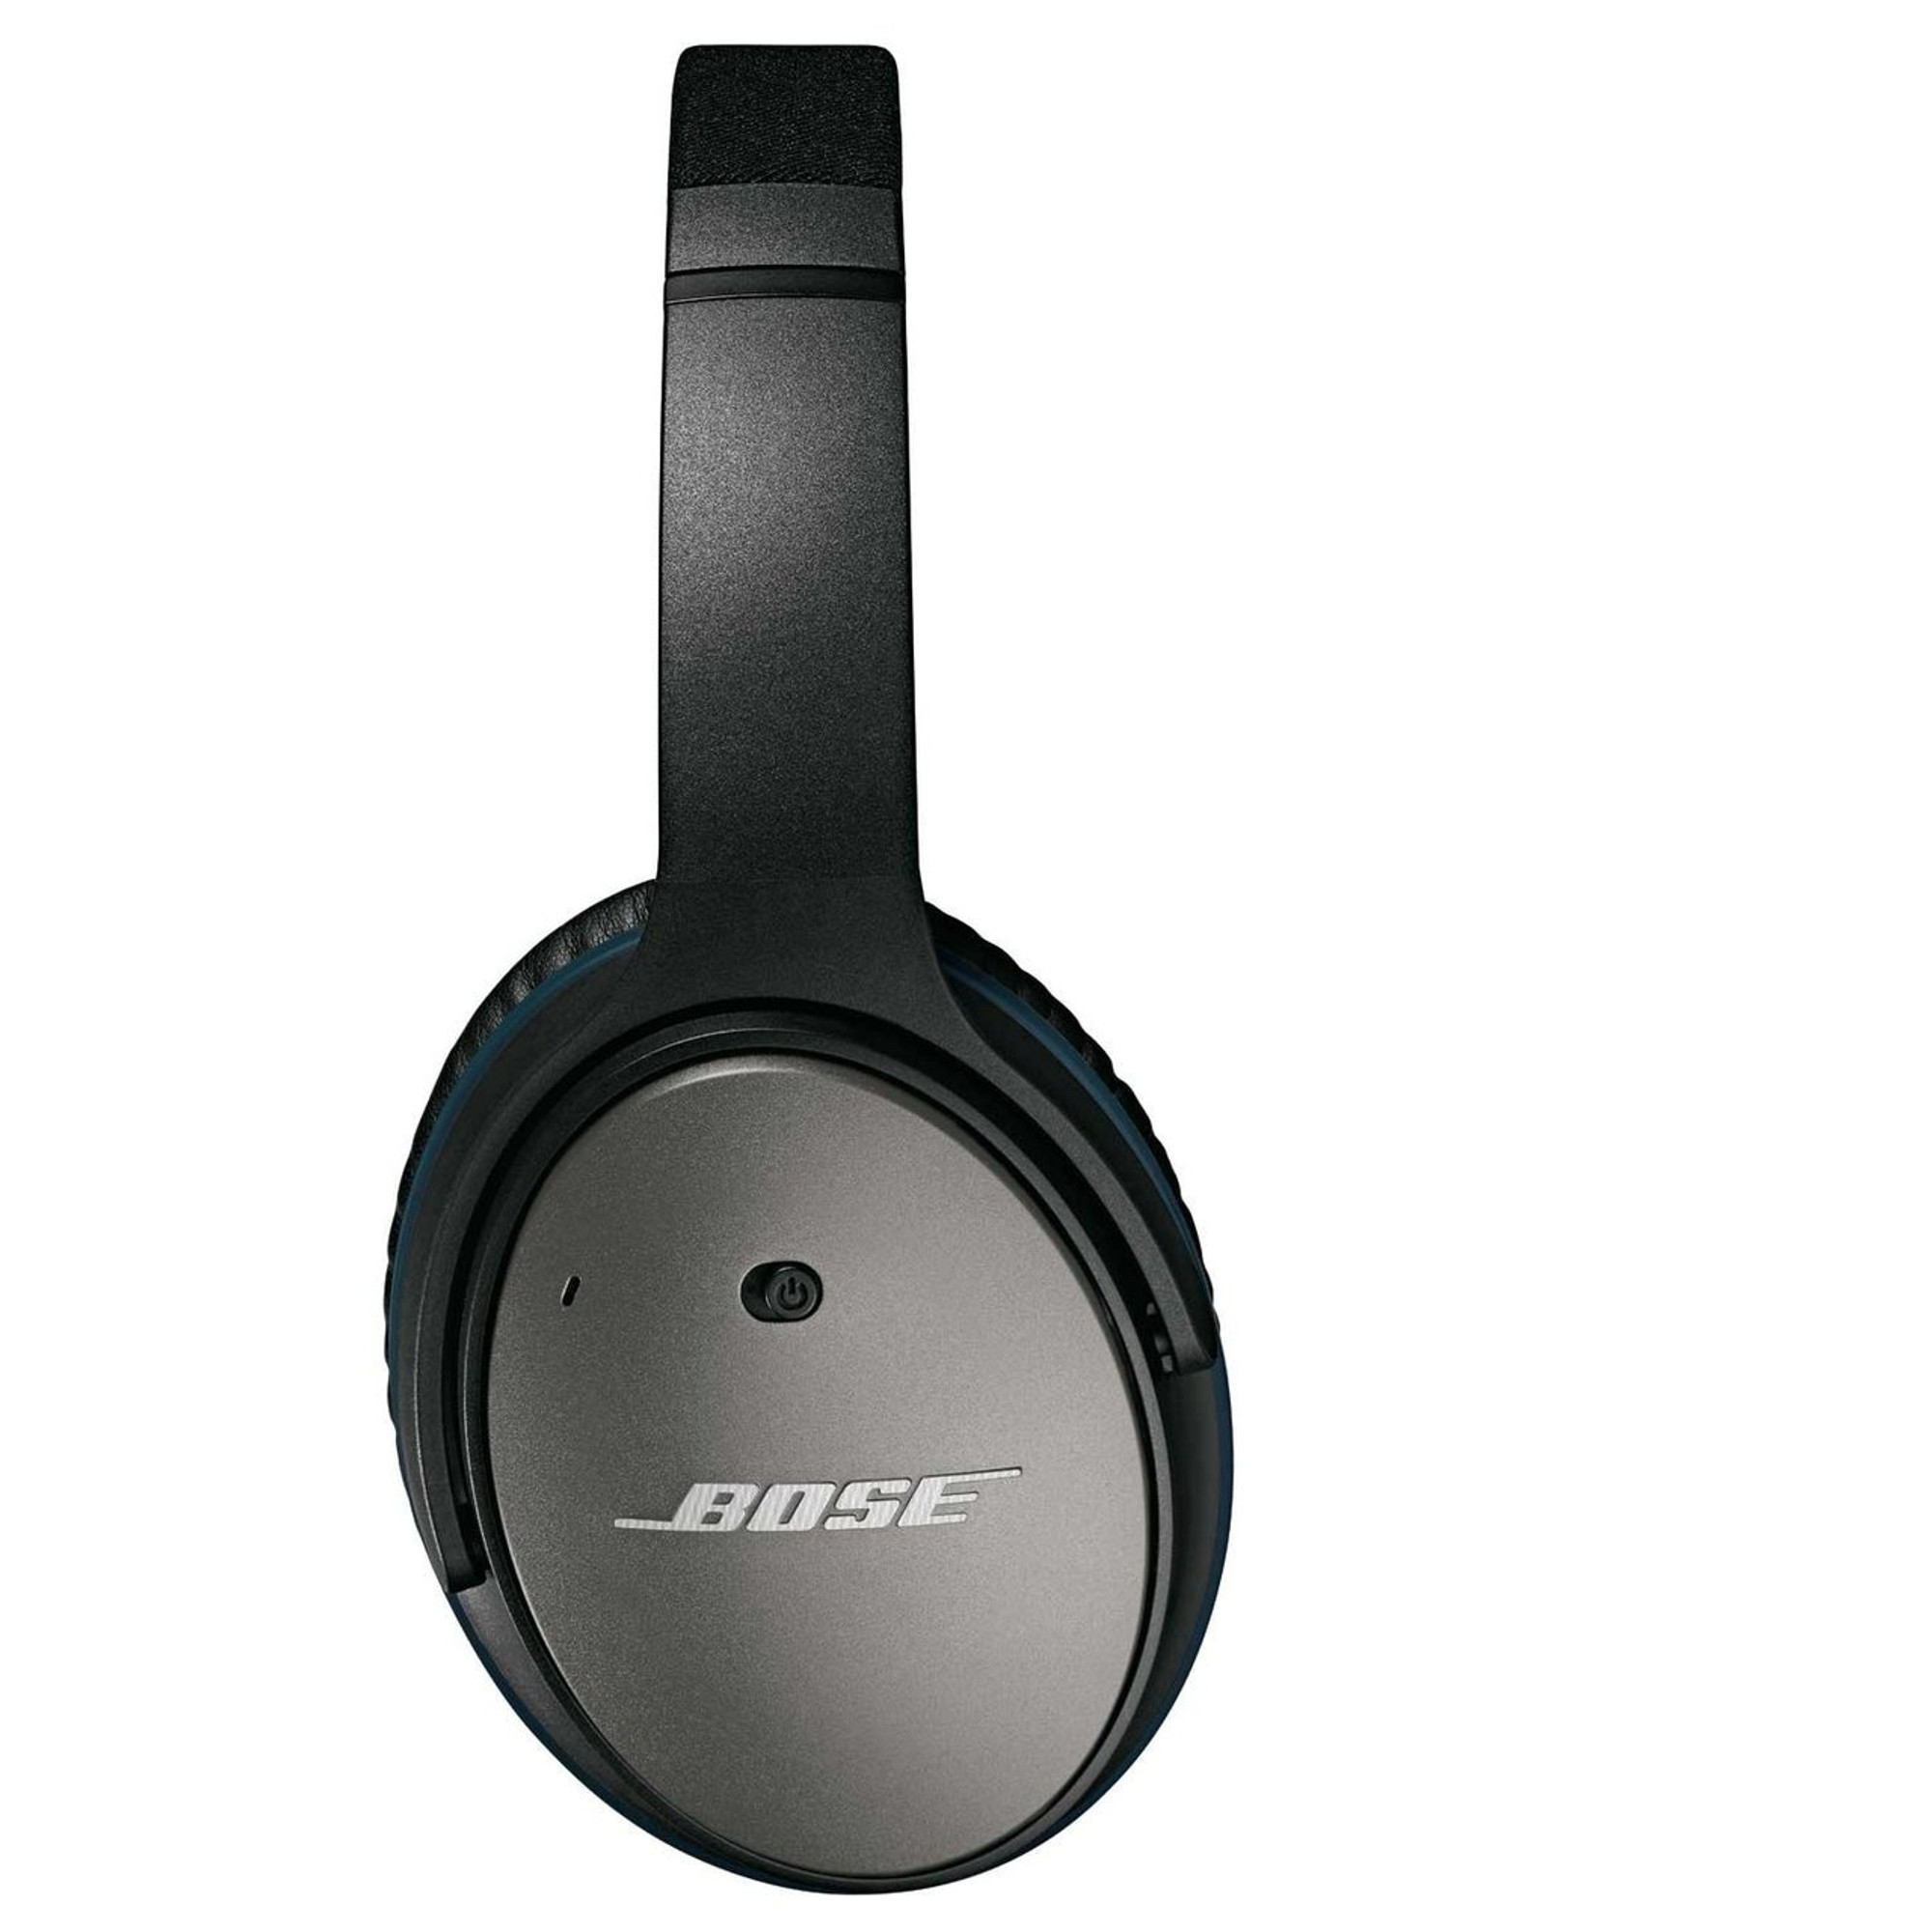 eb03b7e3220 ... Bose QuietComfort 25 Noise Cancelling Headphones For Apple & Android  Devices (Black) ...